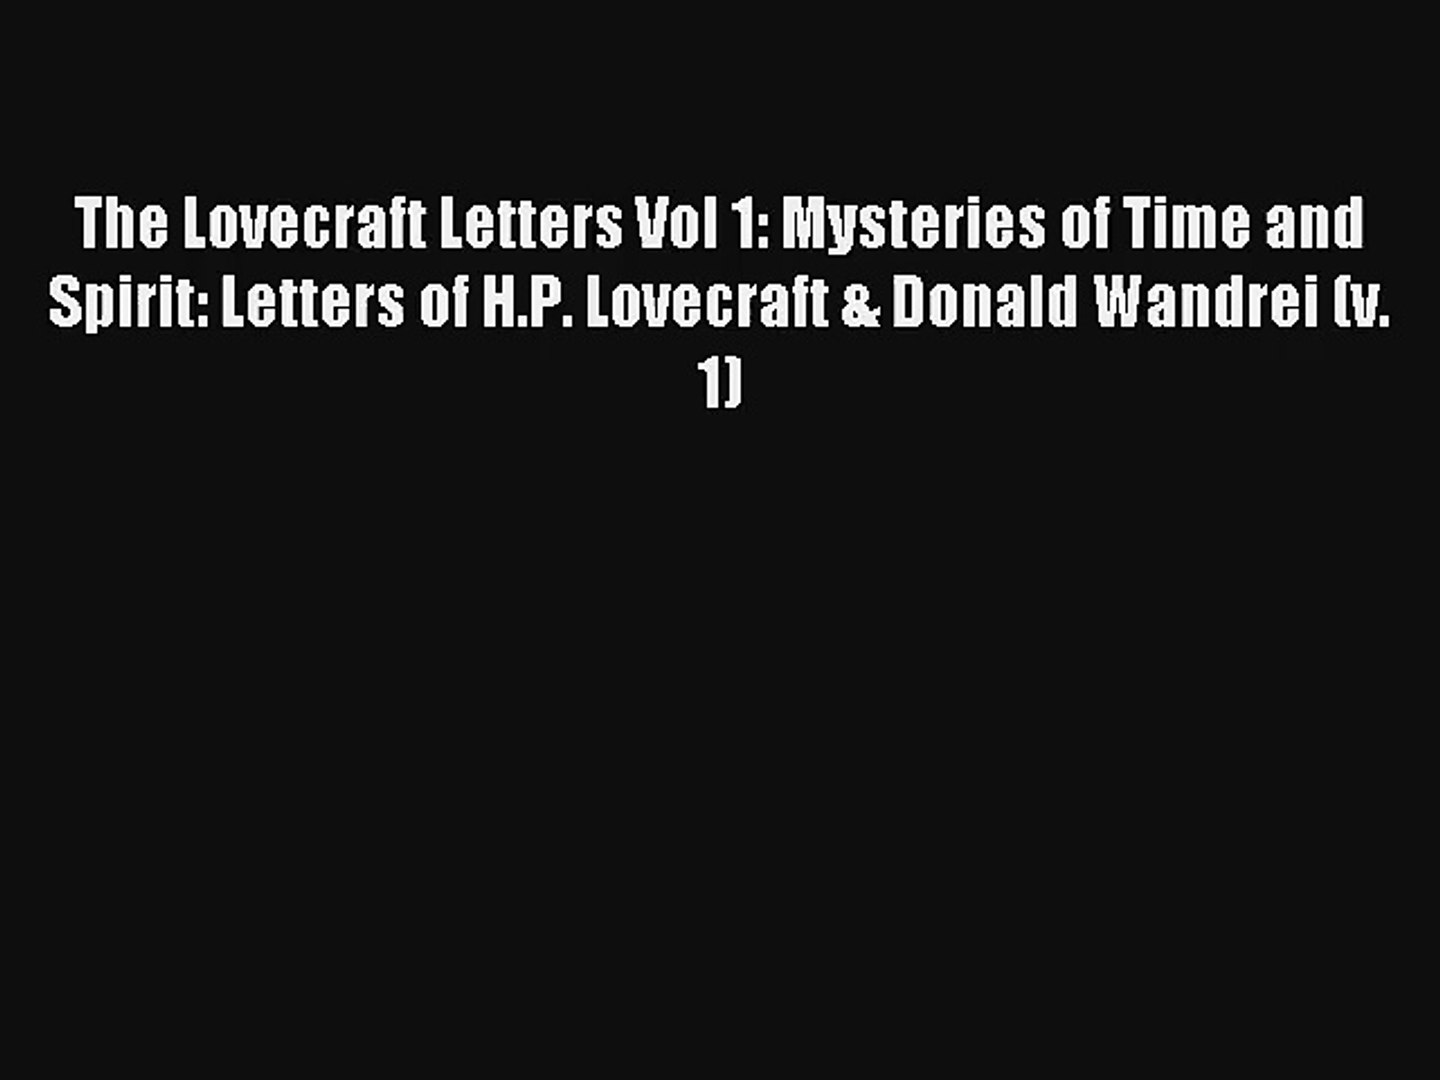 The Lovecraft Letters Vol 1: Mysteries of Time and Spirit: Letters of H.P. Lovecraft & Donald